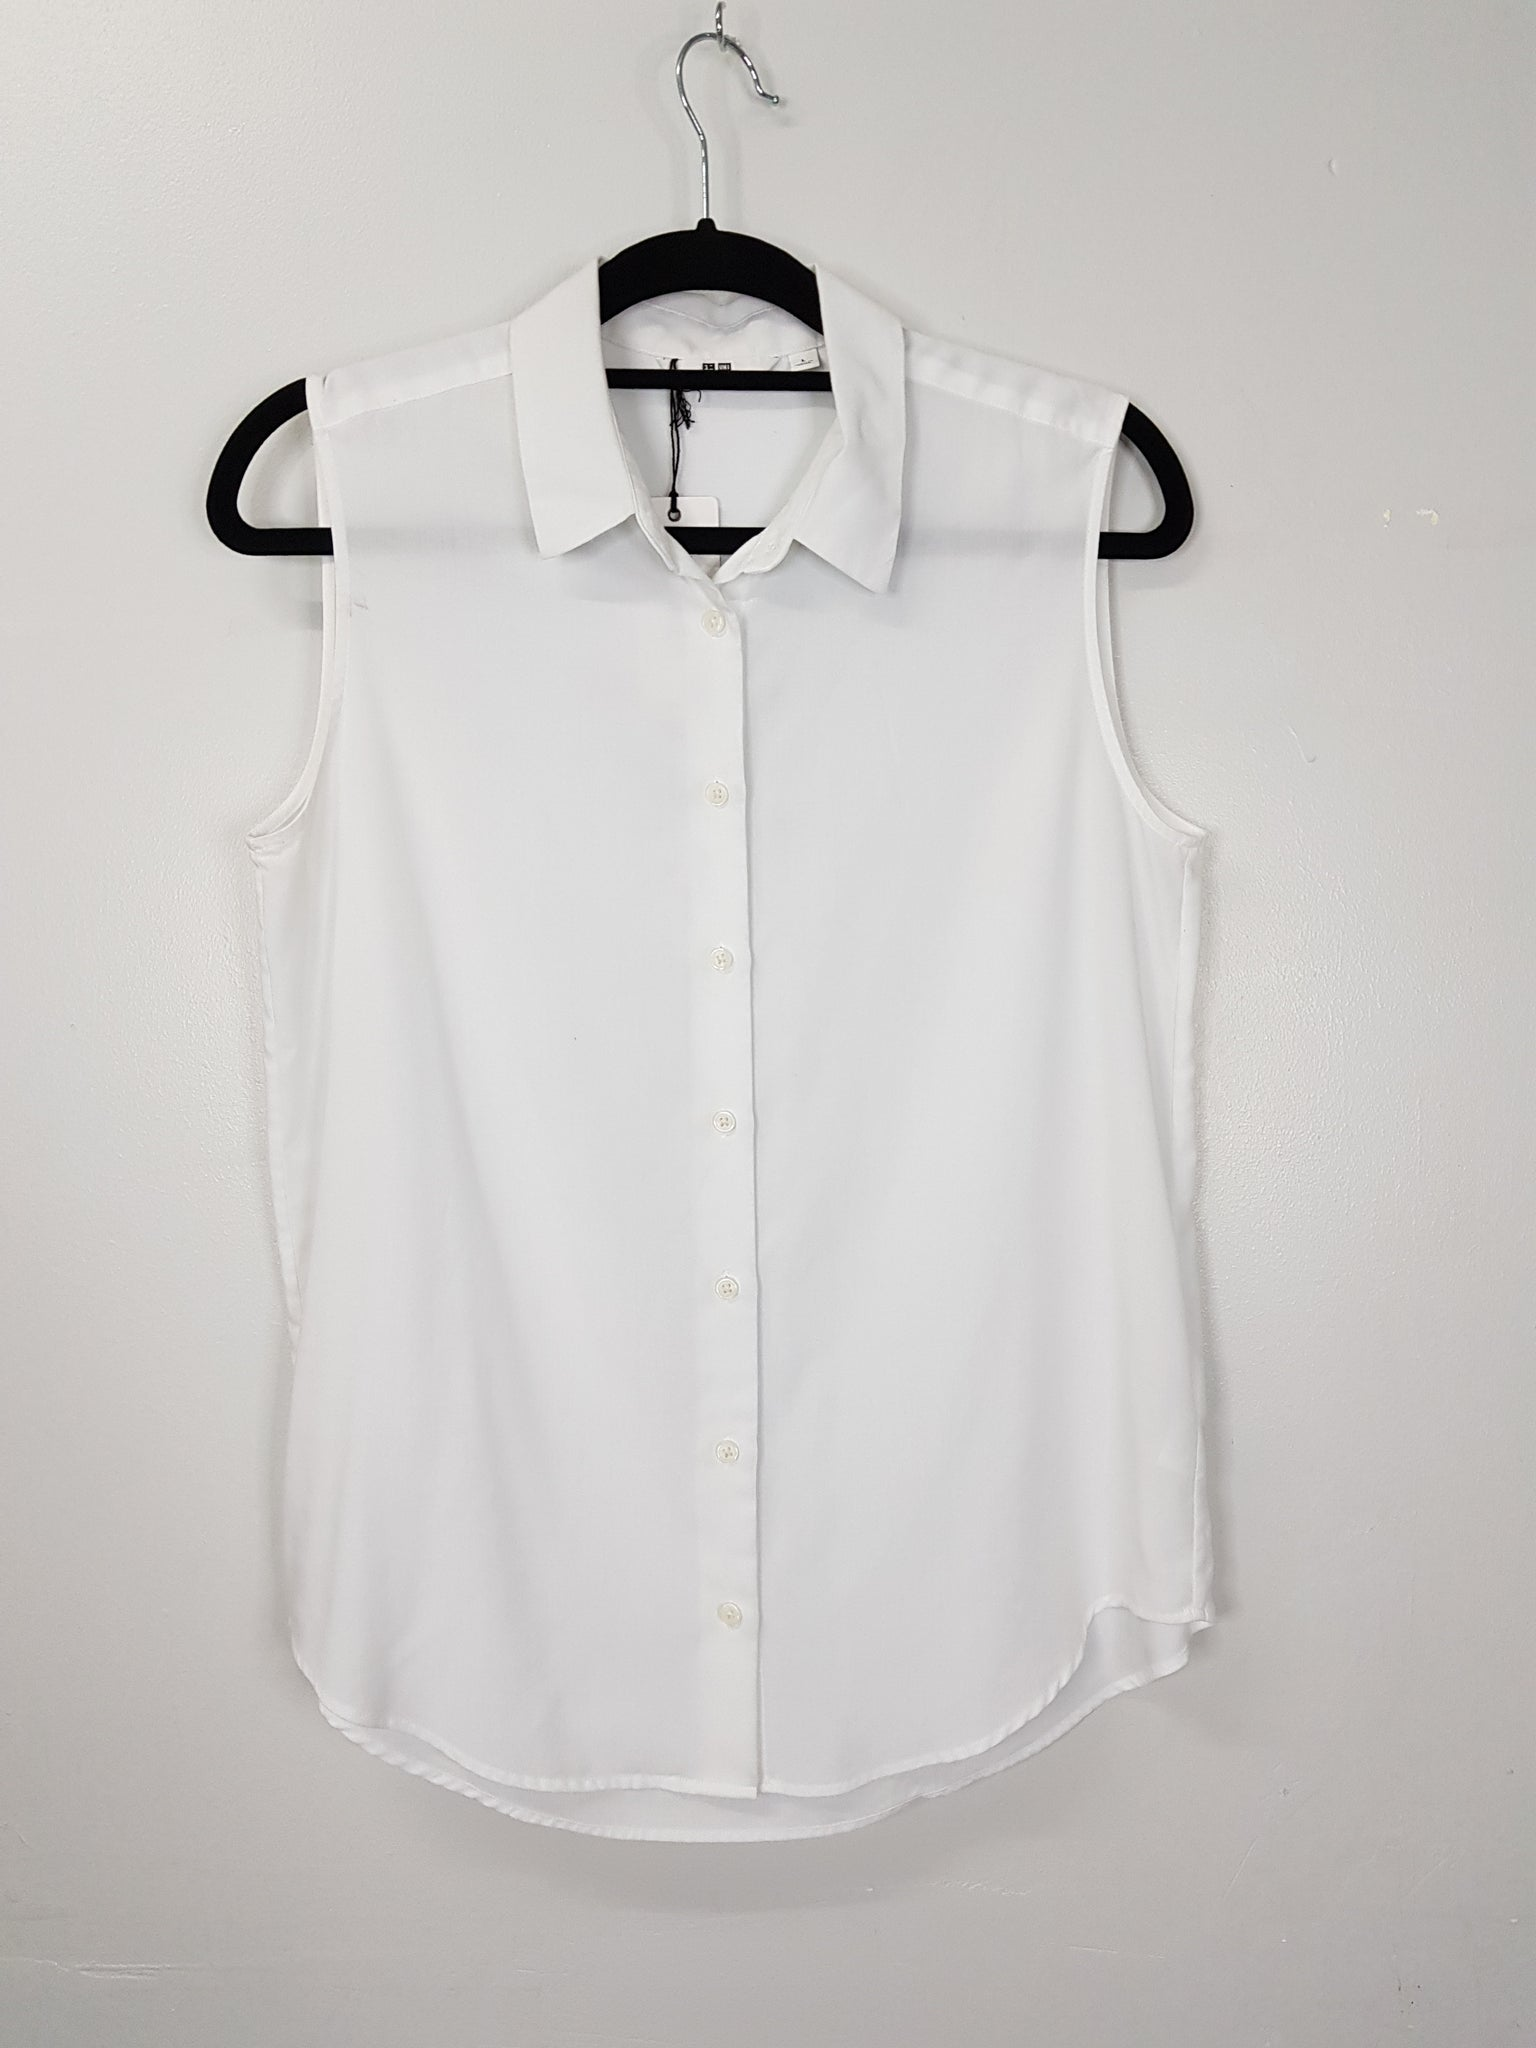 Uniqlo white sleeveless blouse